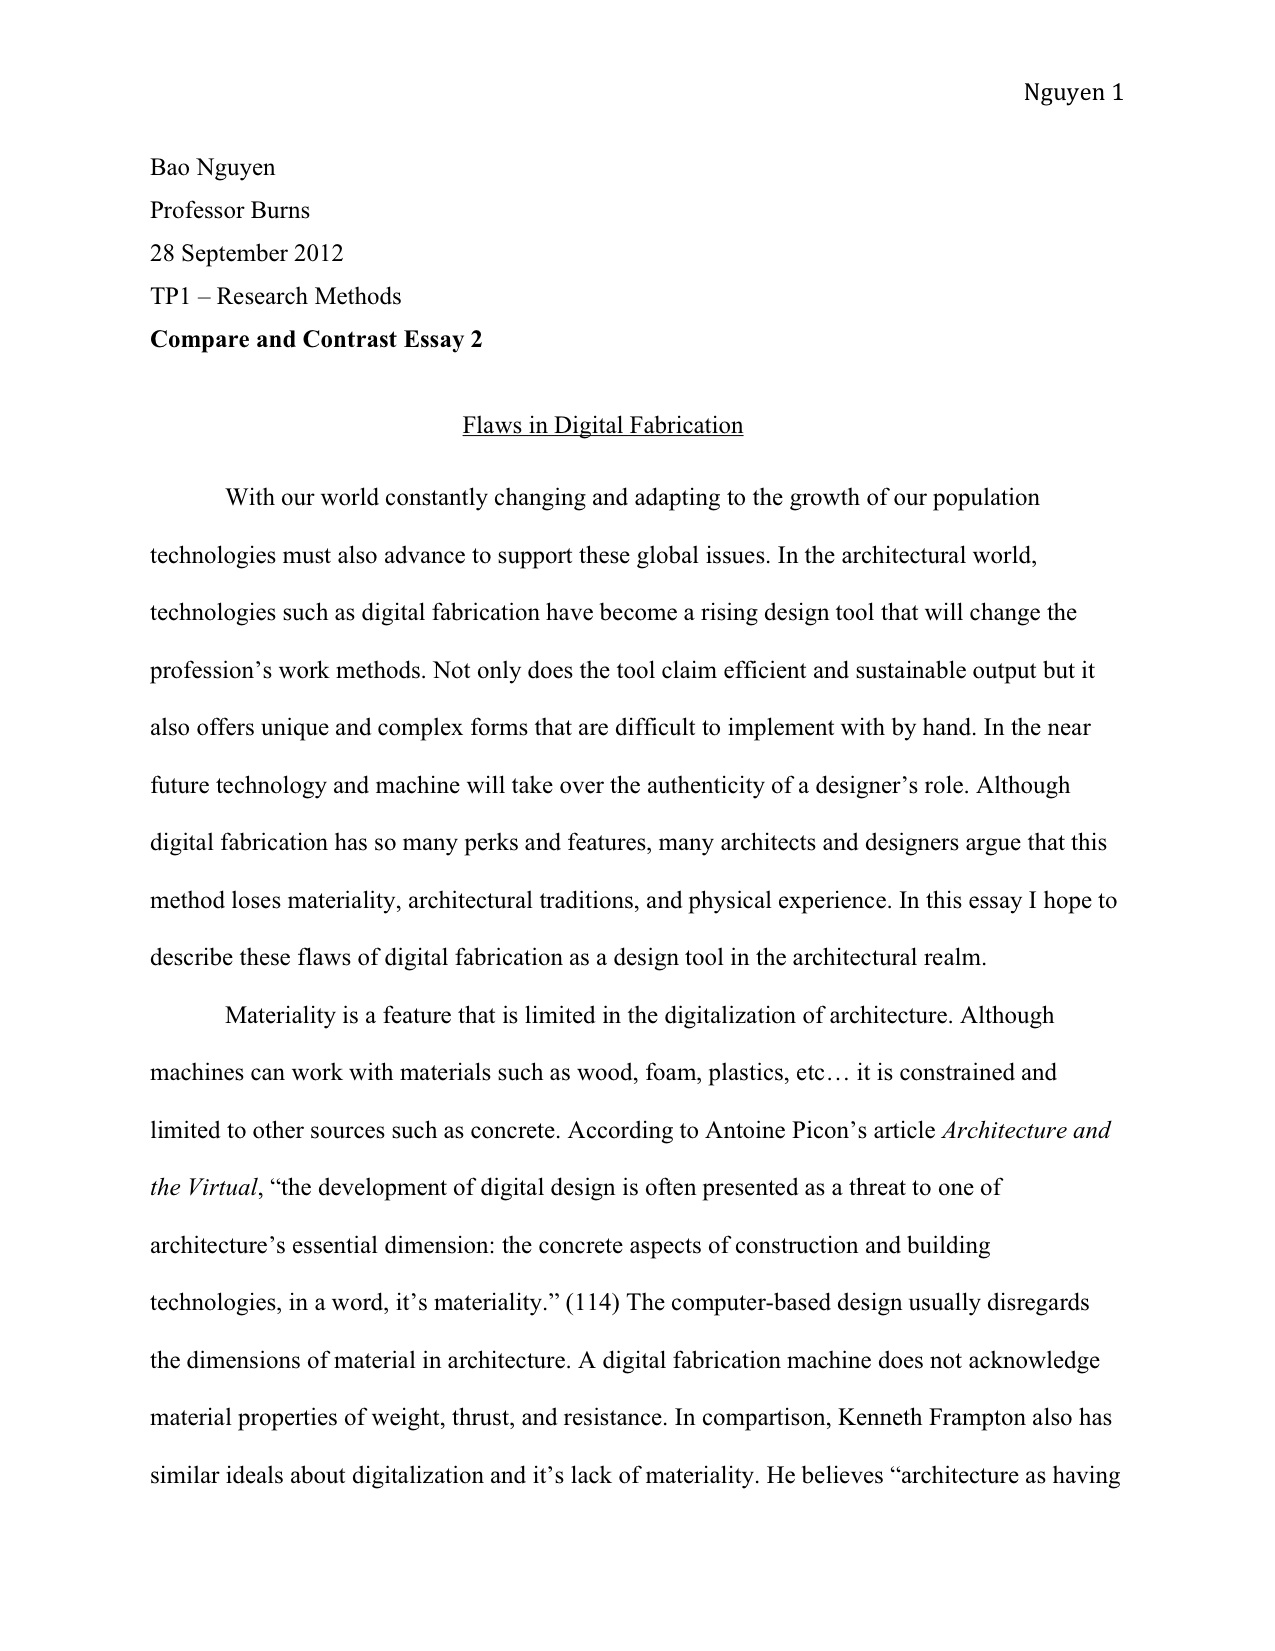 Thesis in writing essays